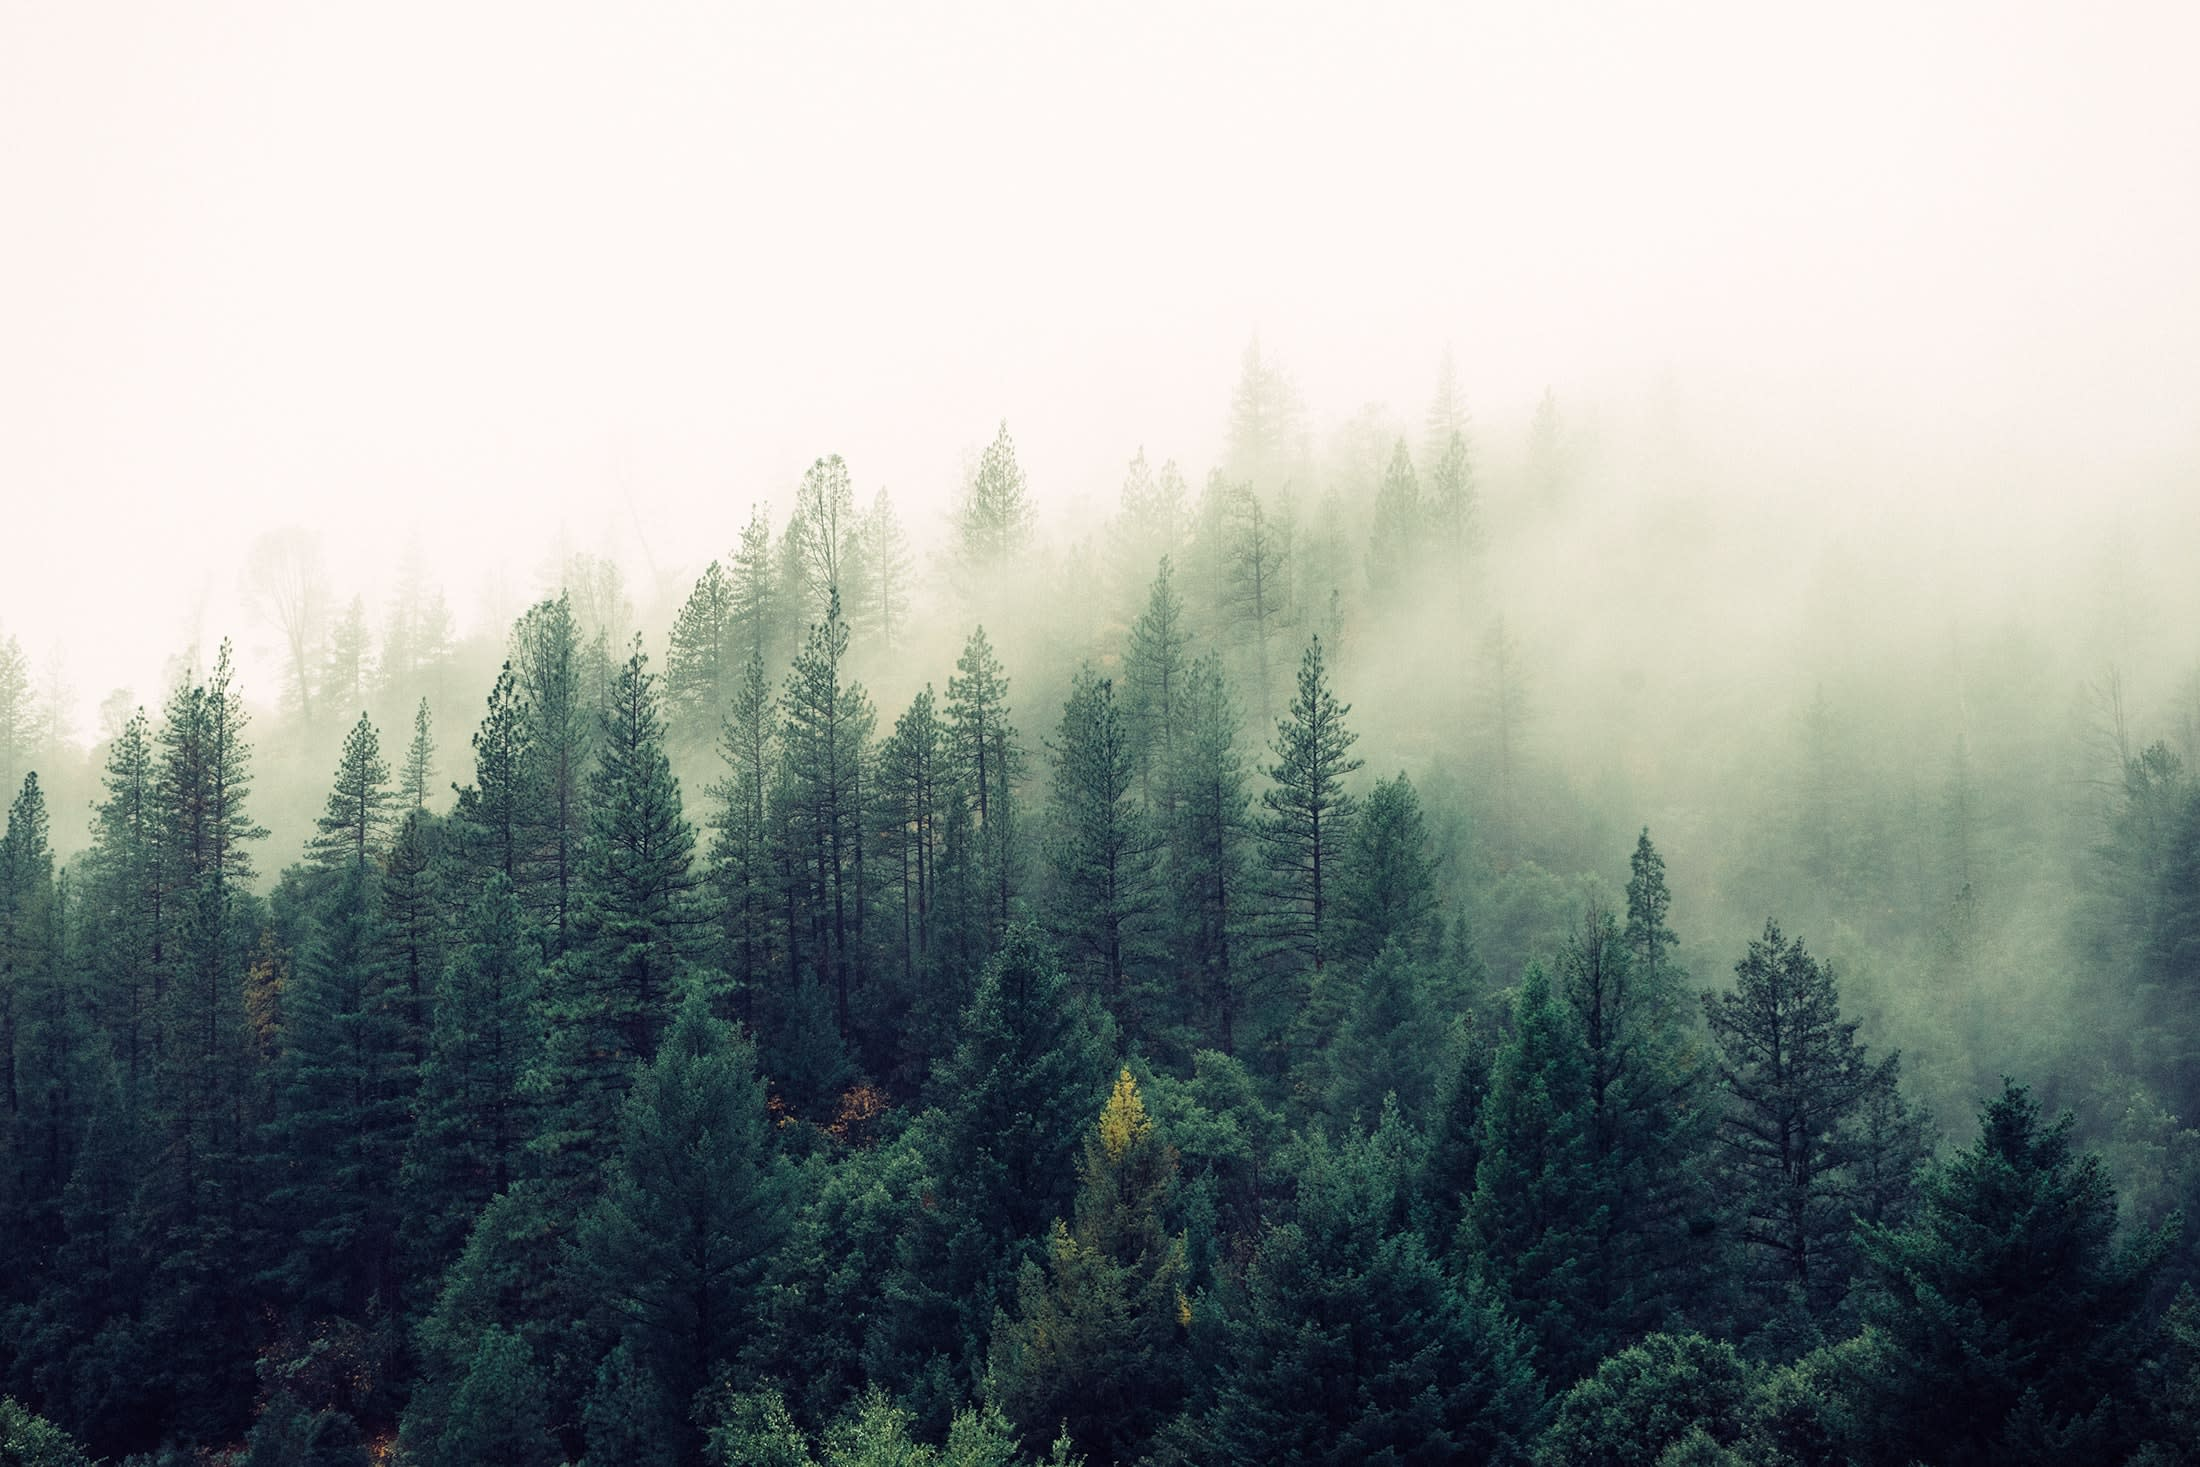 Forest with fog rolling in from unsplash.com, photographed by Jay Mantri.